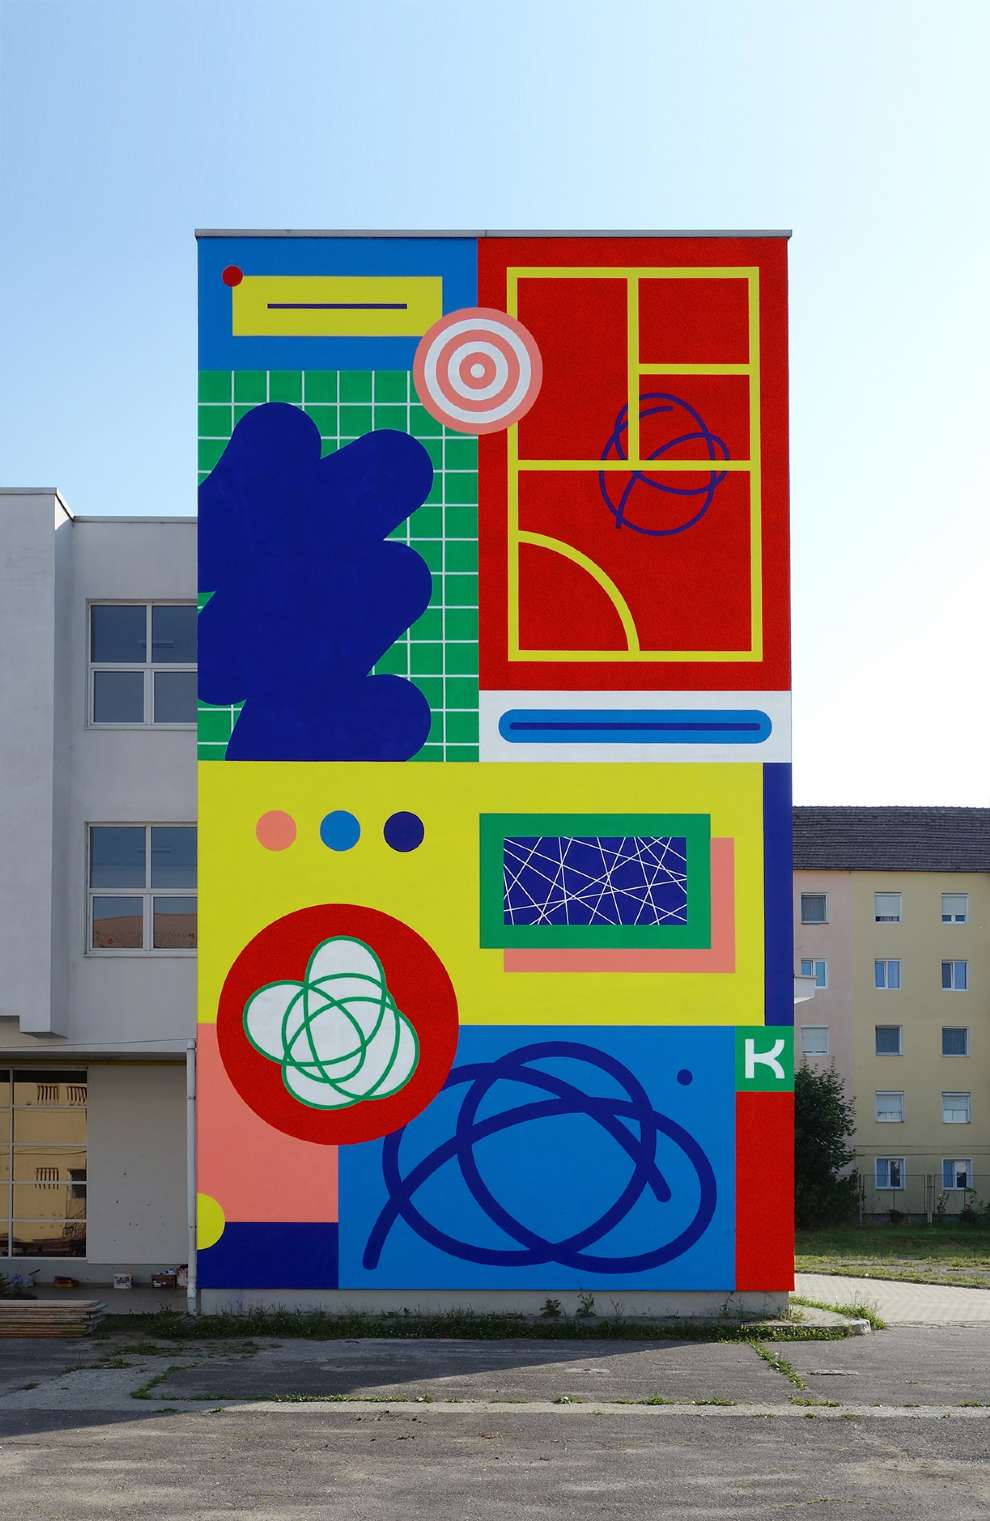 Kitra, Bold and colourful geometric shapes design hand painted on a building facade